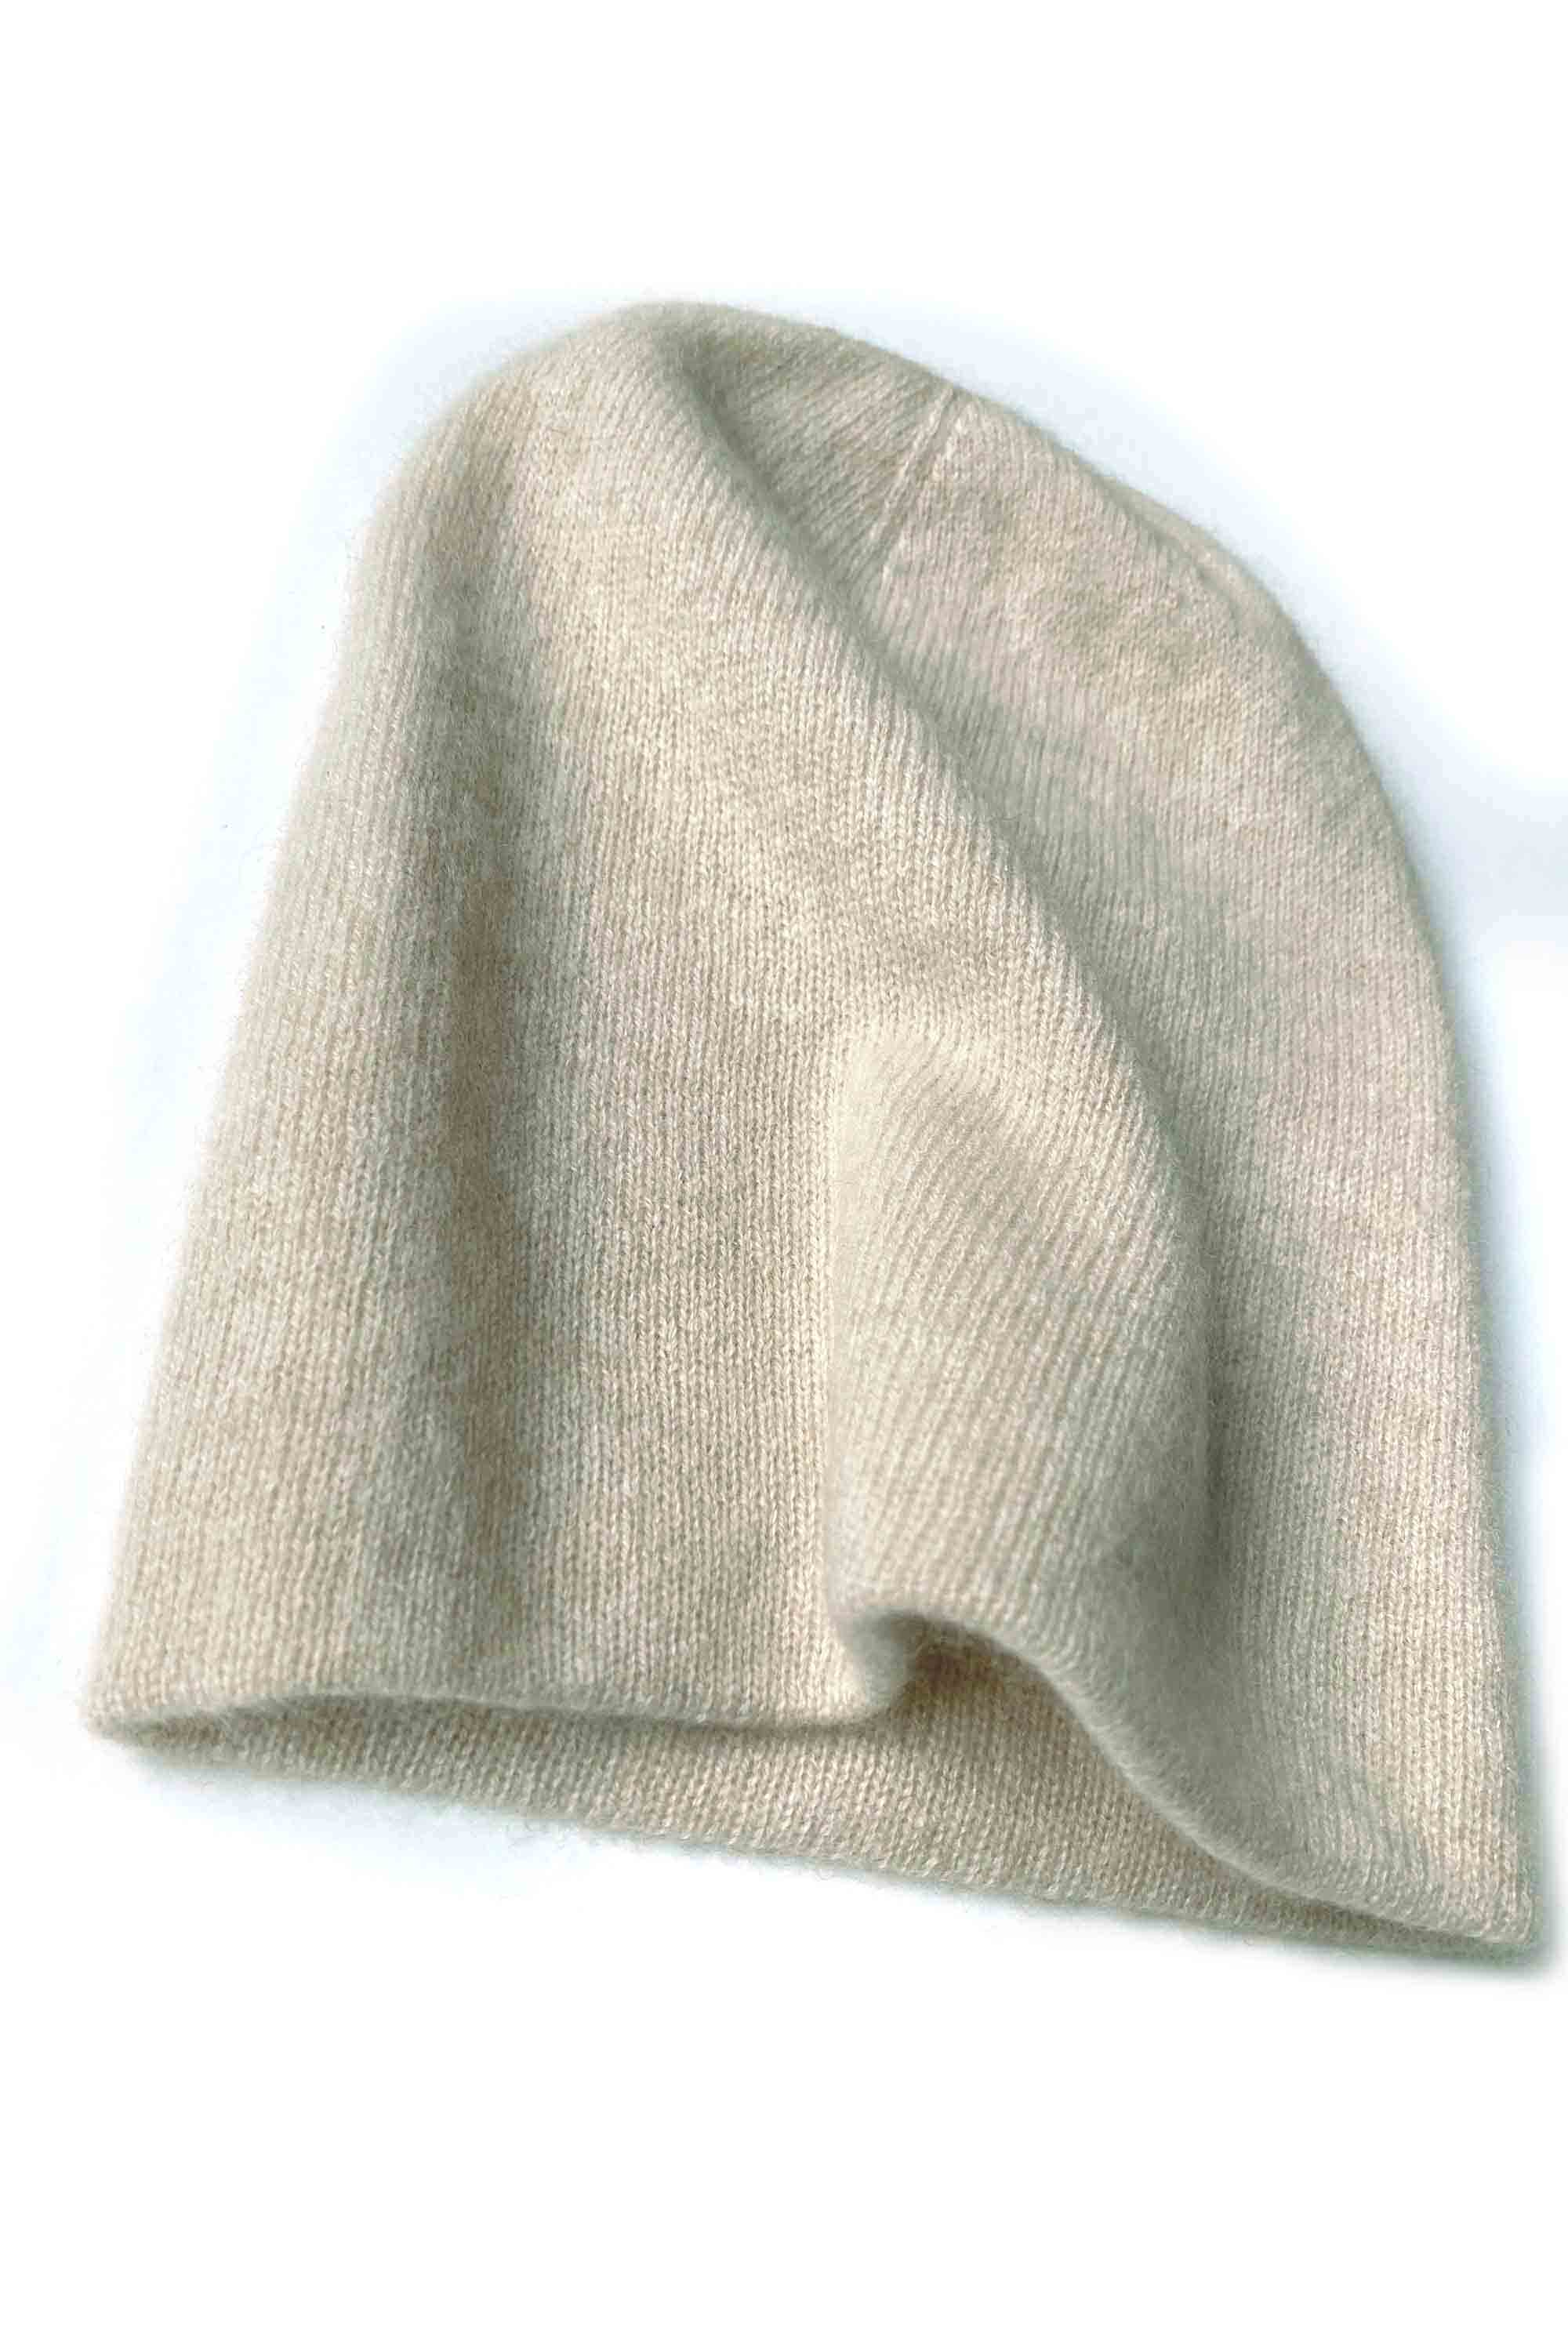 Bundle offer for women's cashmere hat, scarf and gloves in beige